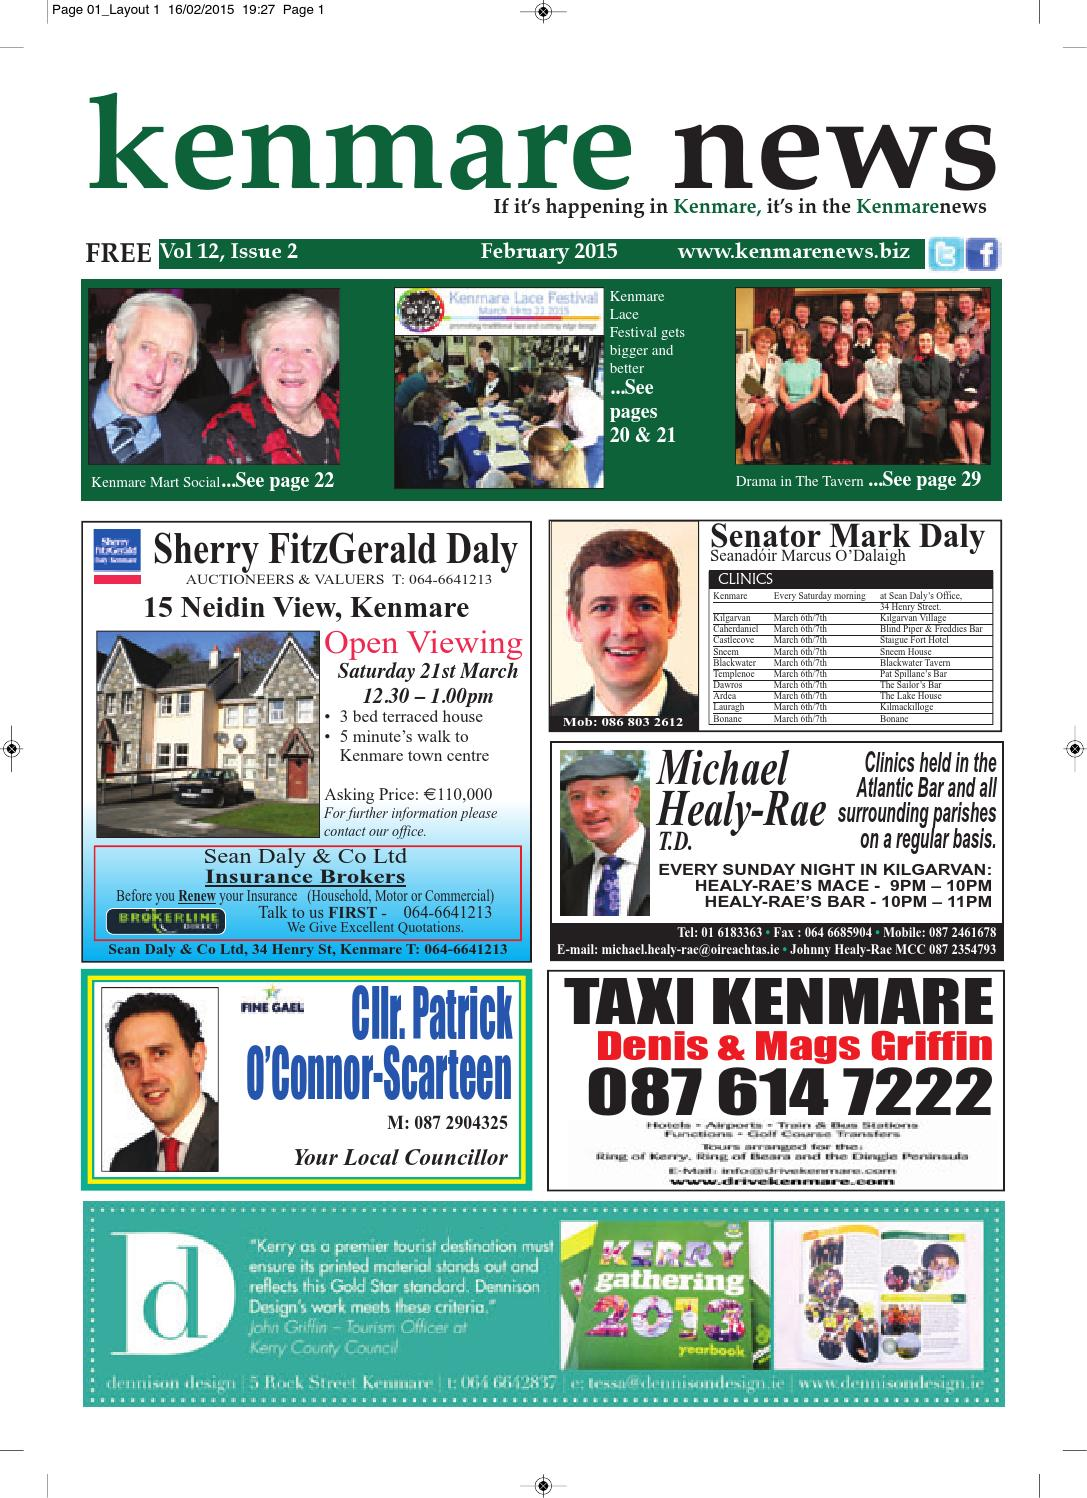 Kenmare news sept 2015 by Kenmare News - issuu